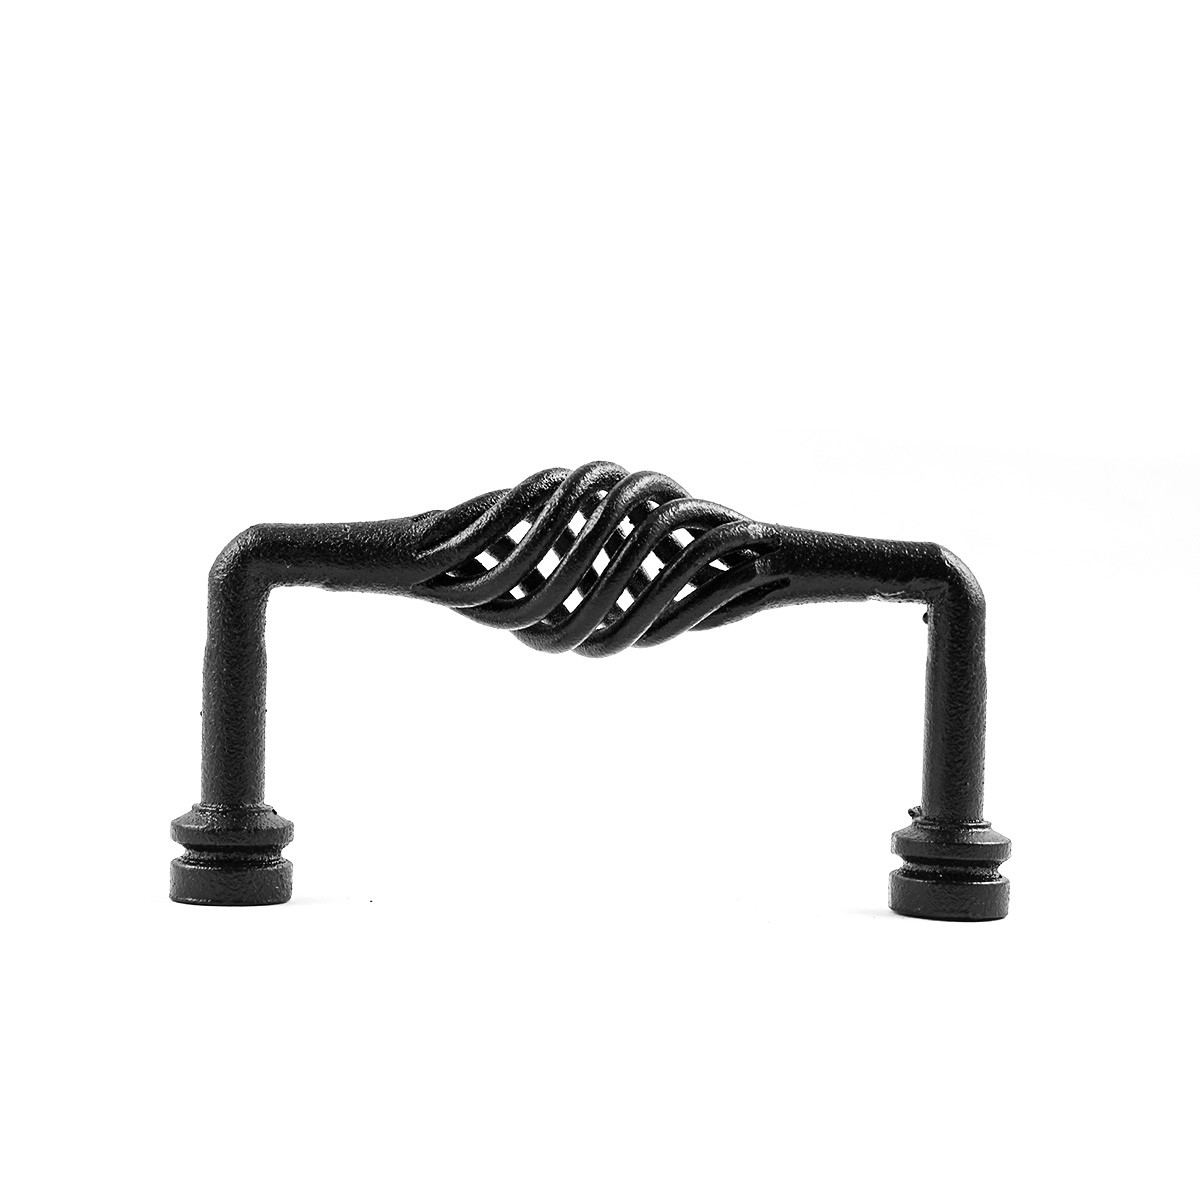 25 Drawer Handle Cabinet Pull Birdcage Black Wrought Iron 5 Renovators Supply Furniture Hardware Cabinet Pull Cabinet Hardware